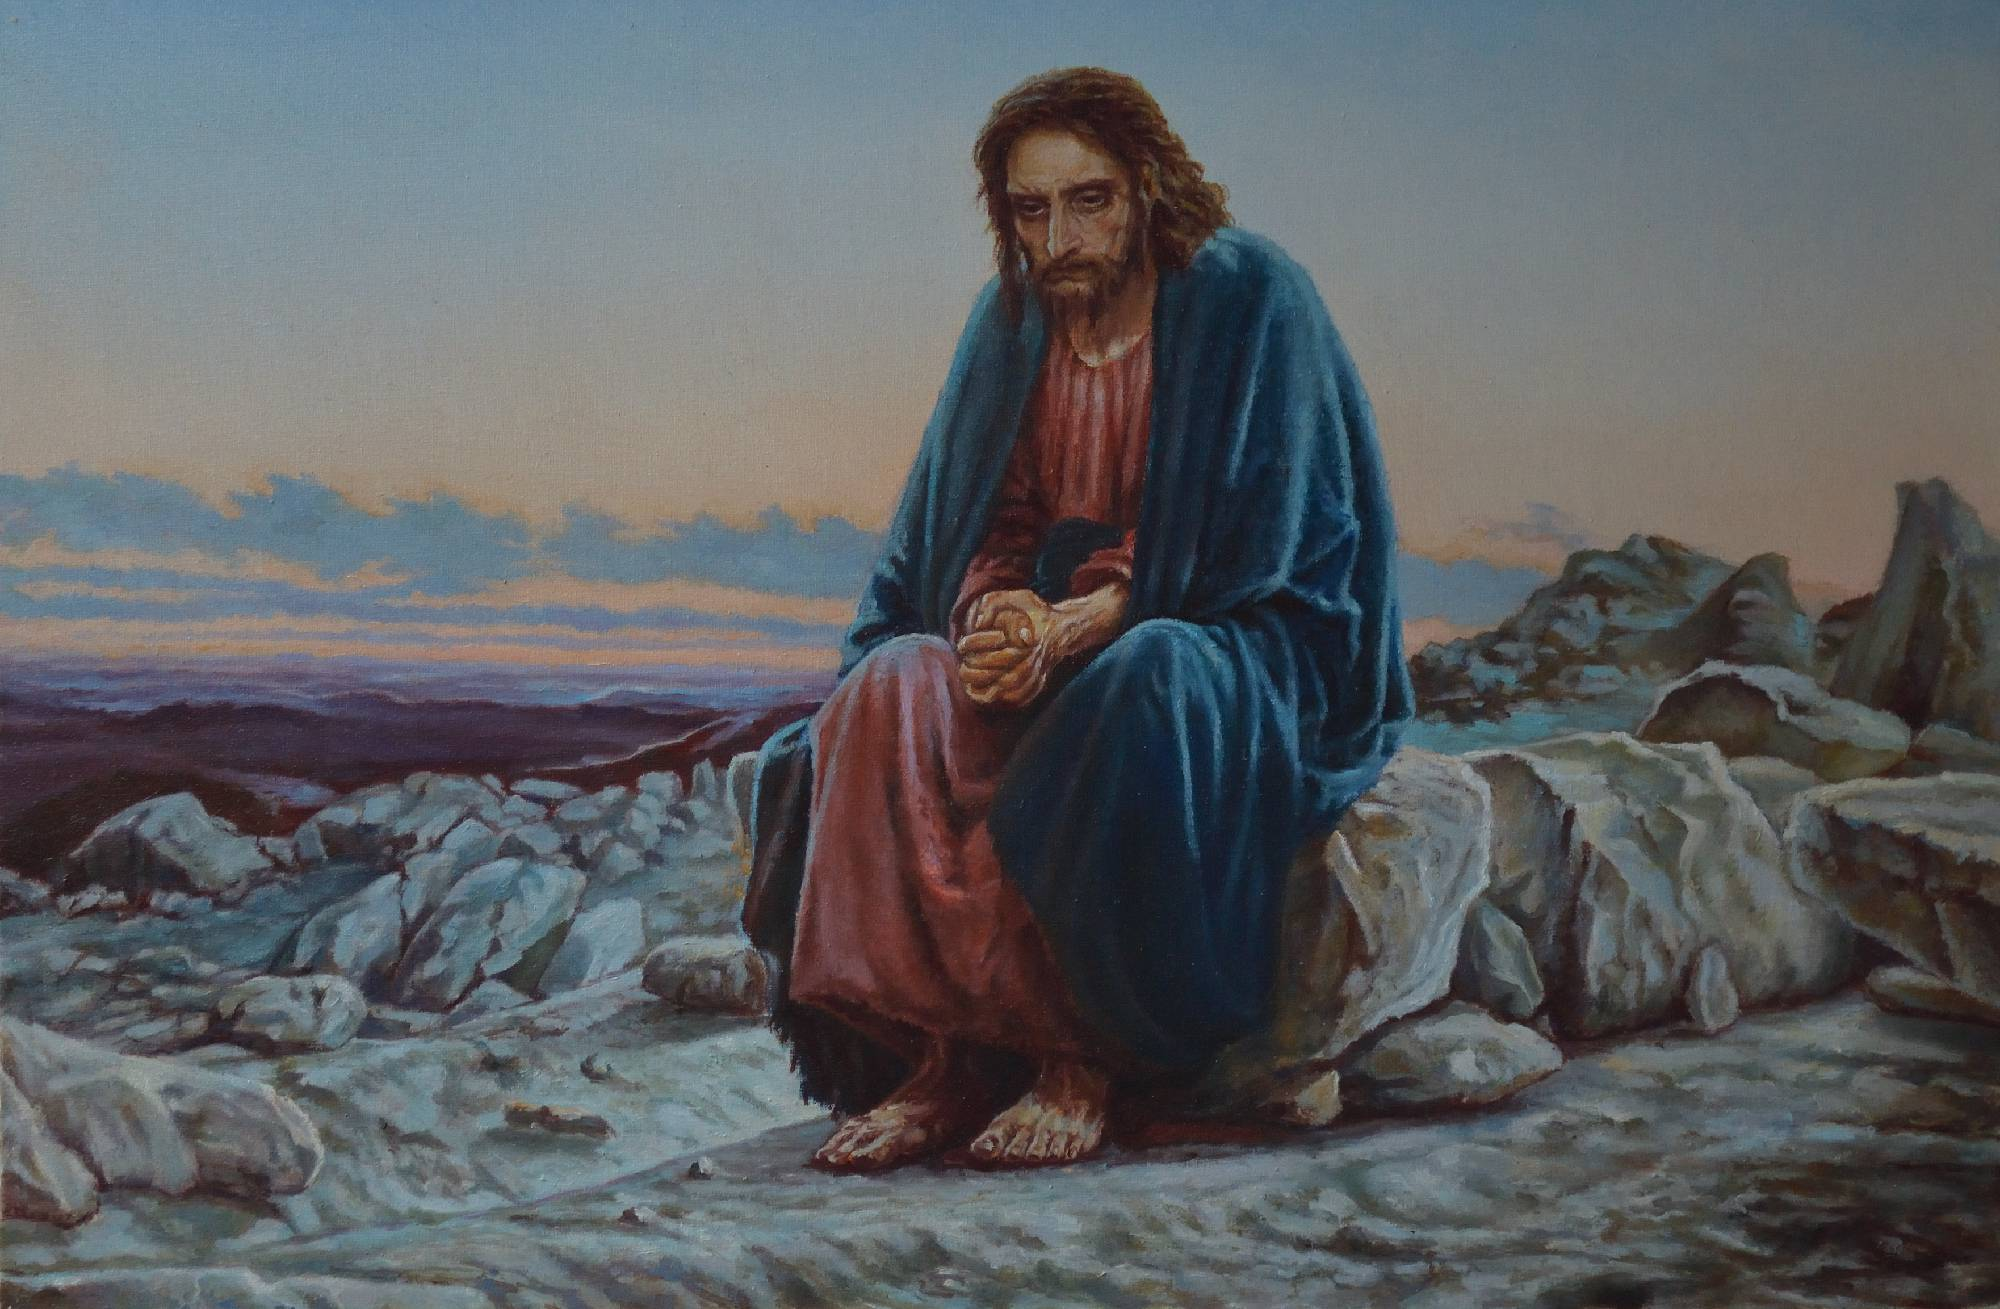 Jesus in Wilderness